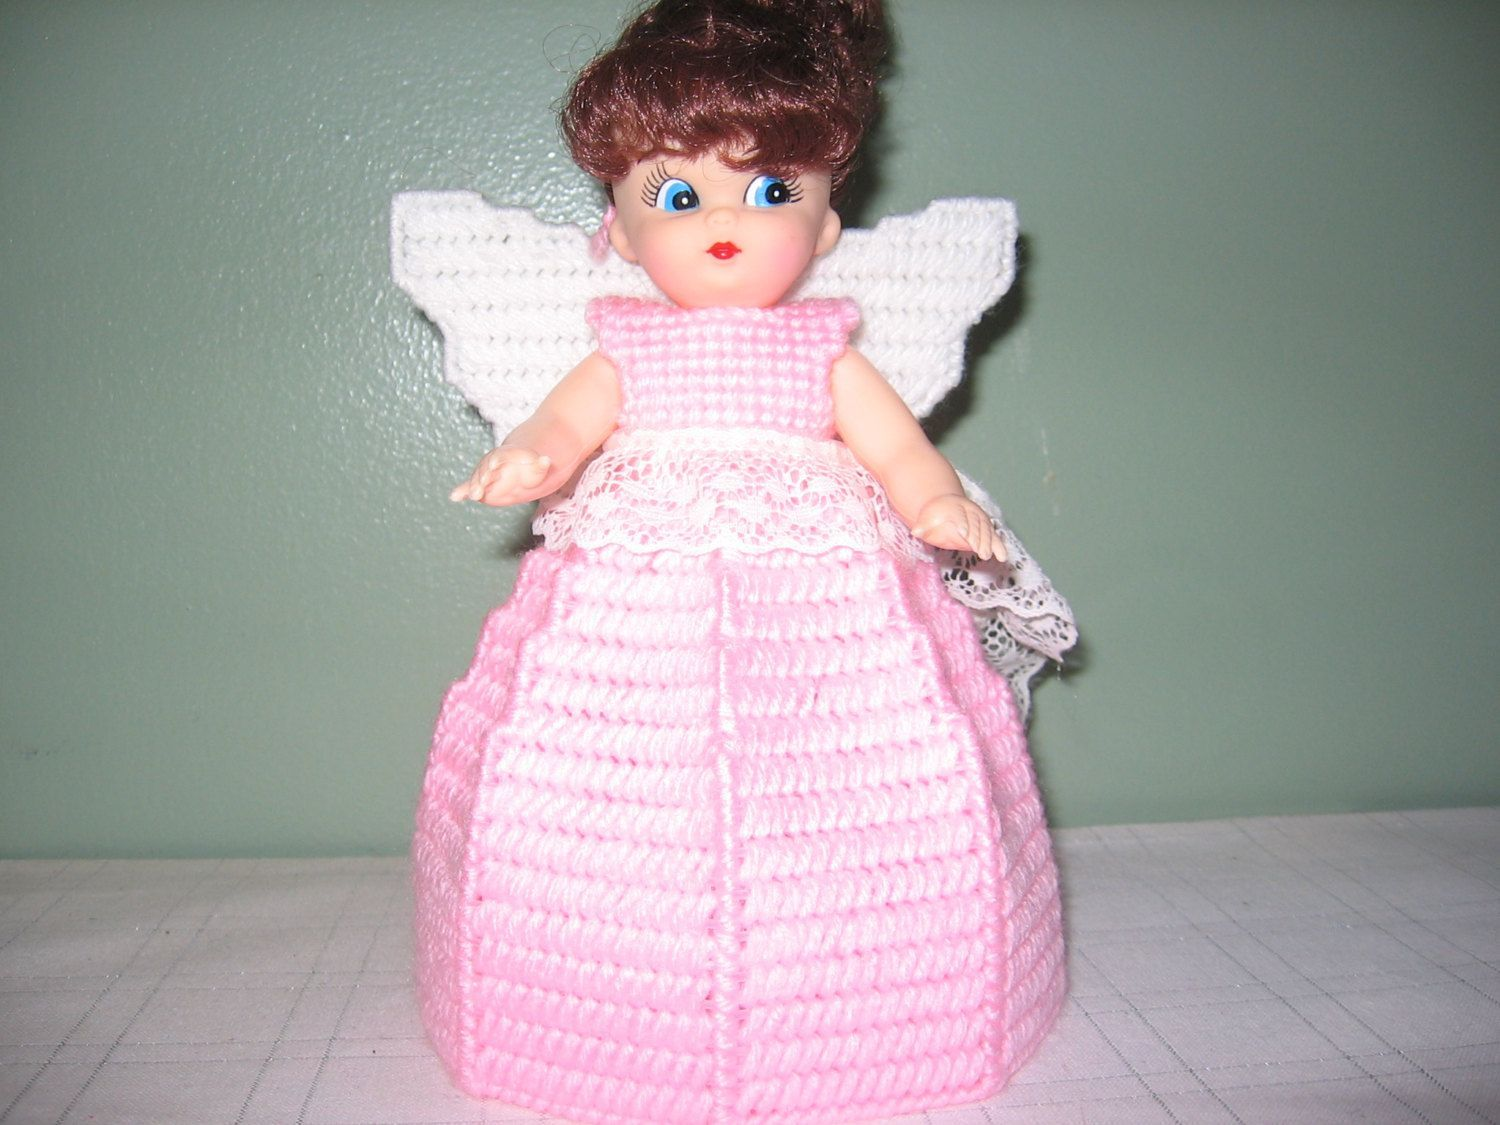 Light Pink Angel Air Freshner or Angel Tree Topper Collectible Doll by CreationsbyAMJ on Etsy #airfreshnerdolls Light Pink Angel Air Freshner or Angel Tree Topper Collectible Doll by CreationsbyAMJ on Etsy #airfreshnerdolls